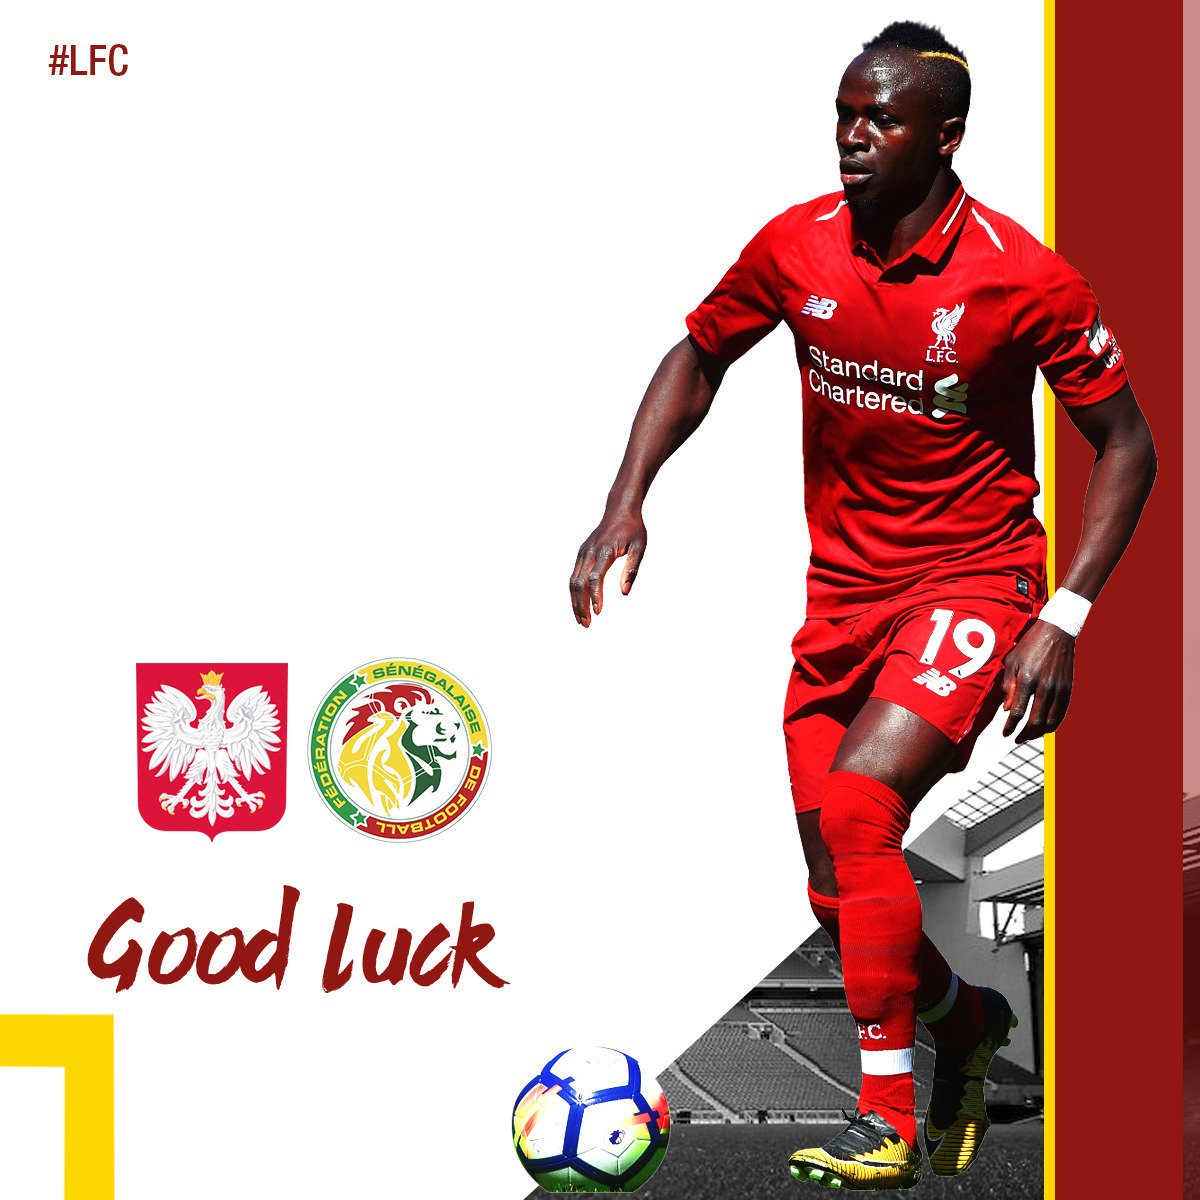 Good luck to Sadio Mane and @MoSalah today. 👊👊  🇵🇱 vs 🇸🇳 (4pm BST) 🇷🇺 vs 🇪🇬 (7pm BST)  #WorldCup #LFC